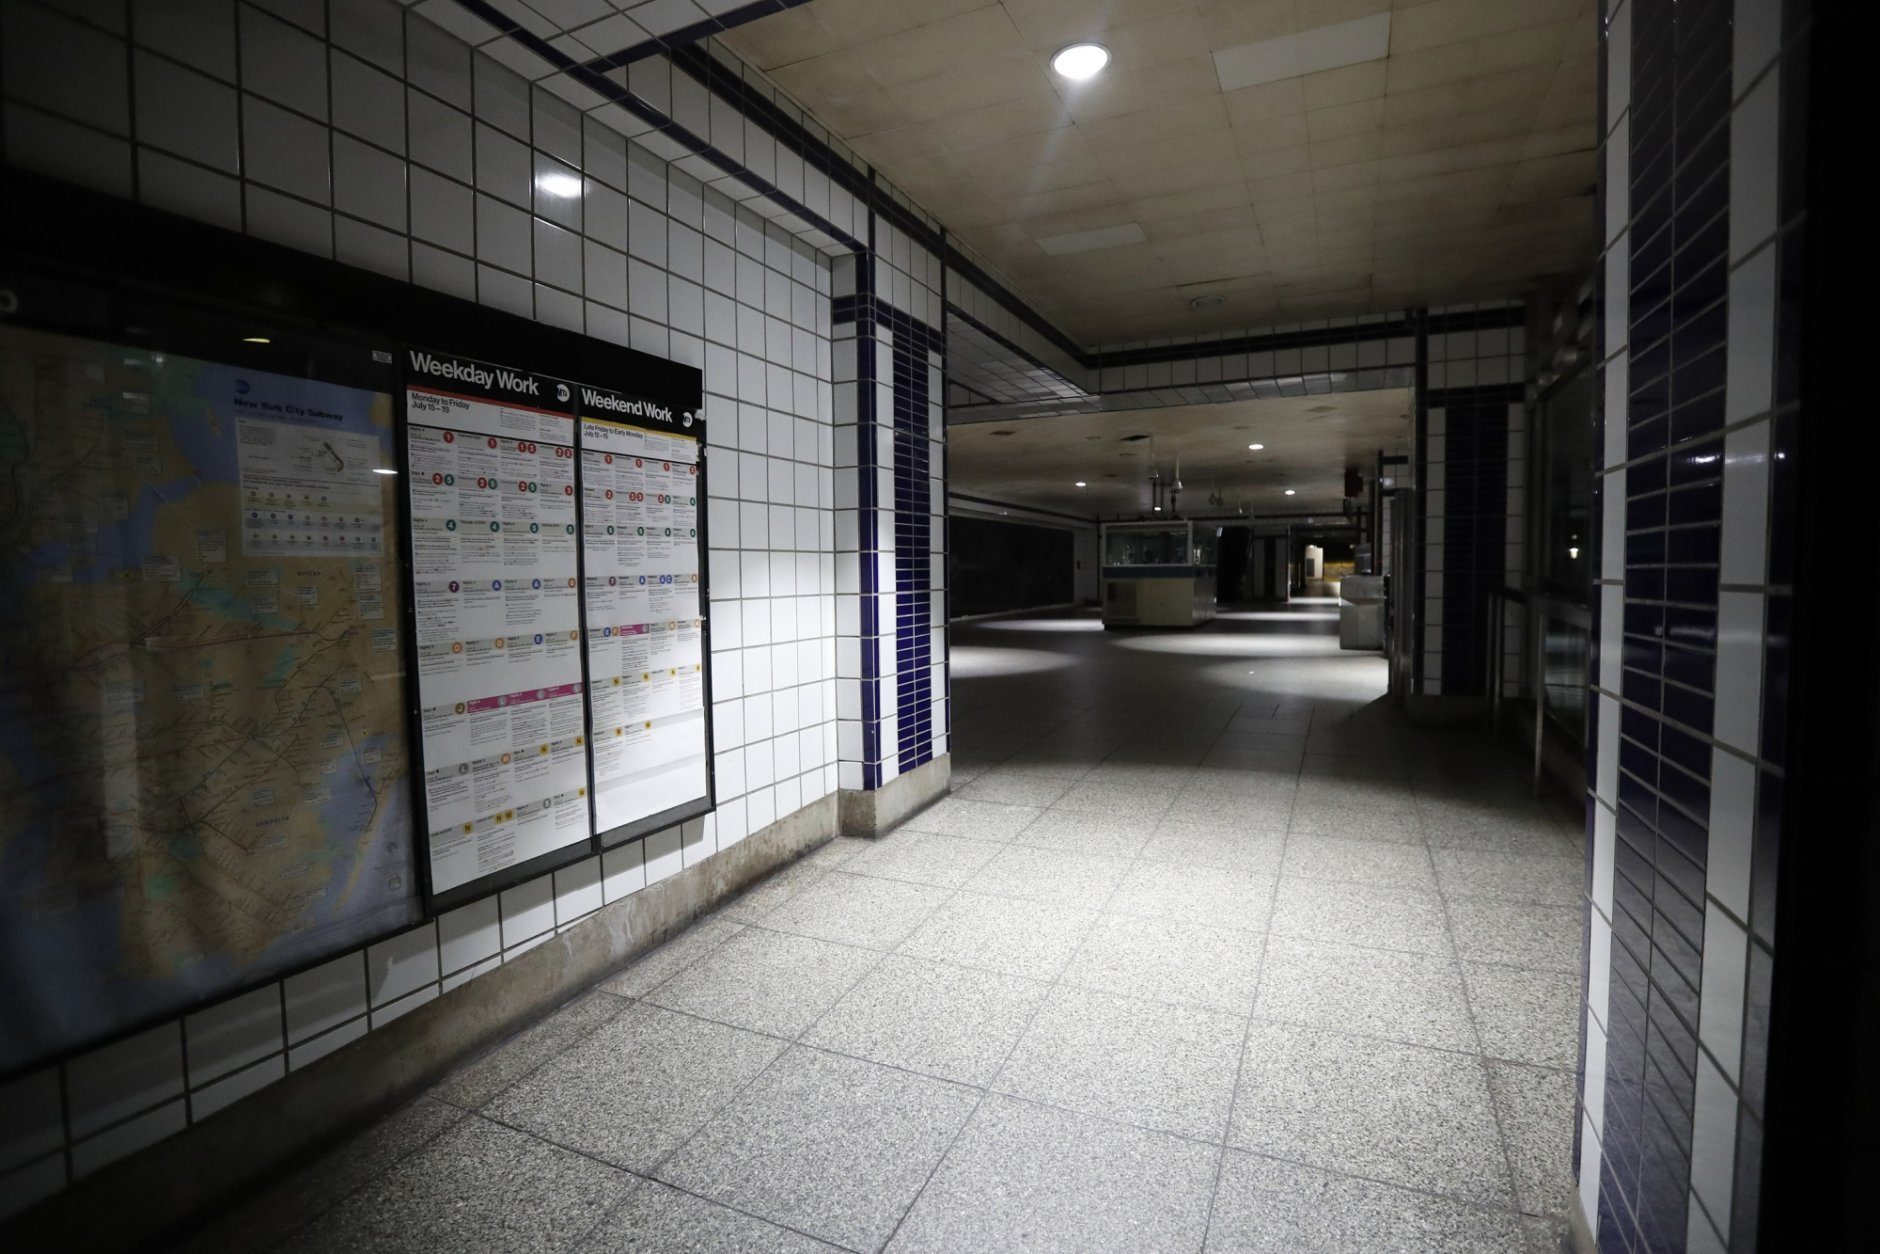 A subway station with emergency lighting is in the dark during a widespread power outage, Saturday, July 13, 2019, in New York. Authorities were scrambling to restore electricity to Manhattan following a power outage that knocked out Times Square's towering electronic screens, darkened marquees in the theater district and left businesses without electricity, elevators stuck and subway cars stalled. (AP Photo/Michael Owens)